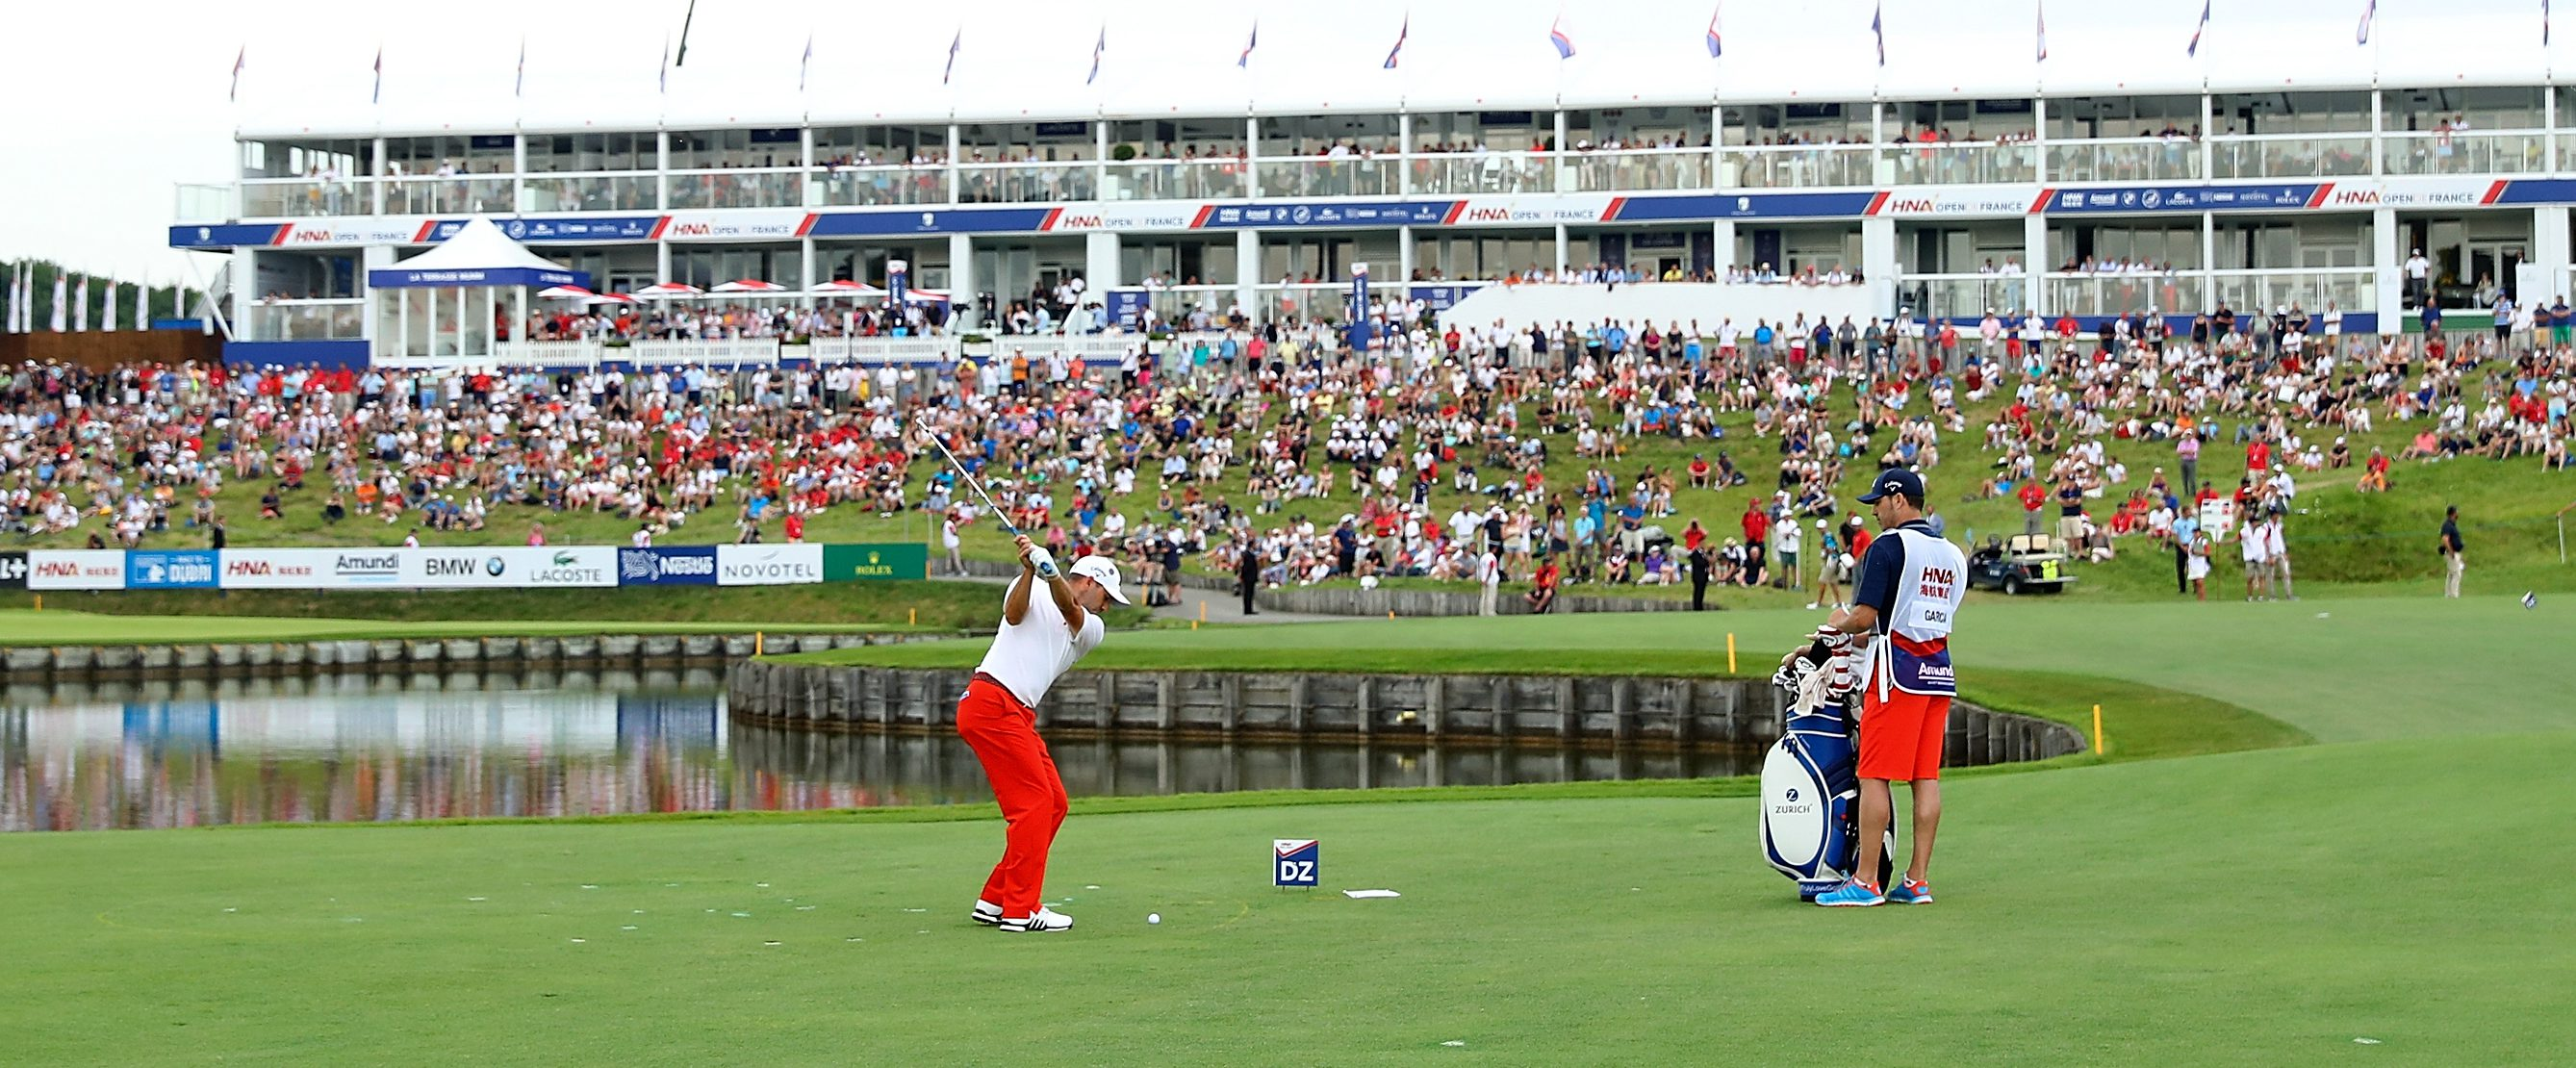 PARIS, FRANCE - JULY 01: Sergio Garcia of Spain plays his fourth shot on the 18th hole during day four of the HNA Open de France at Le Golf National on July 1, 2018 in Paris, France. (Photo by Warren Little/Getty Images)